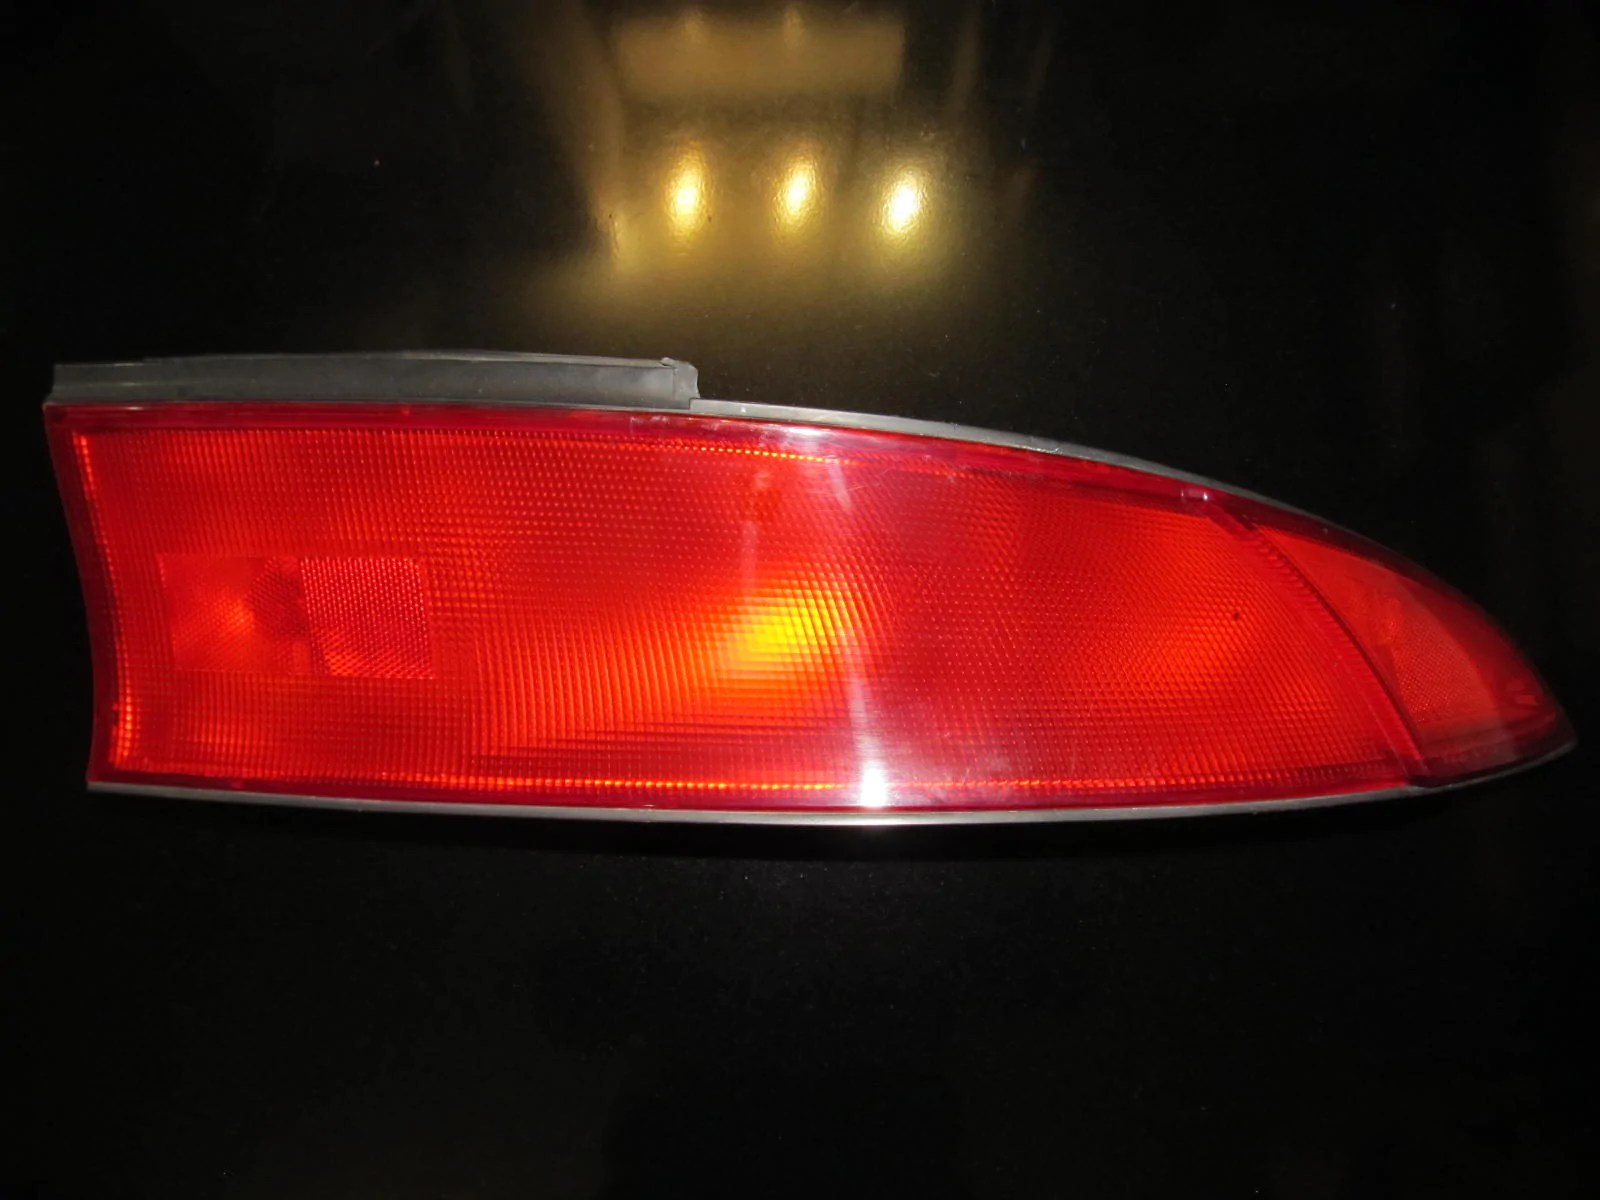 mitsubishi eclipse gst turbo oem tail light right product image  [ 1600 x 1200 Pixel ]